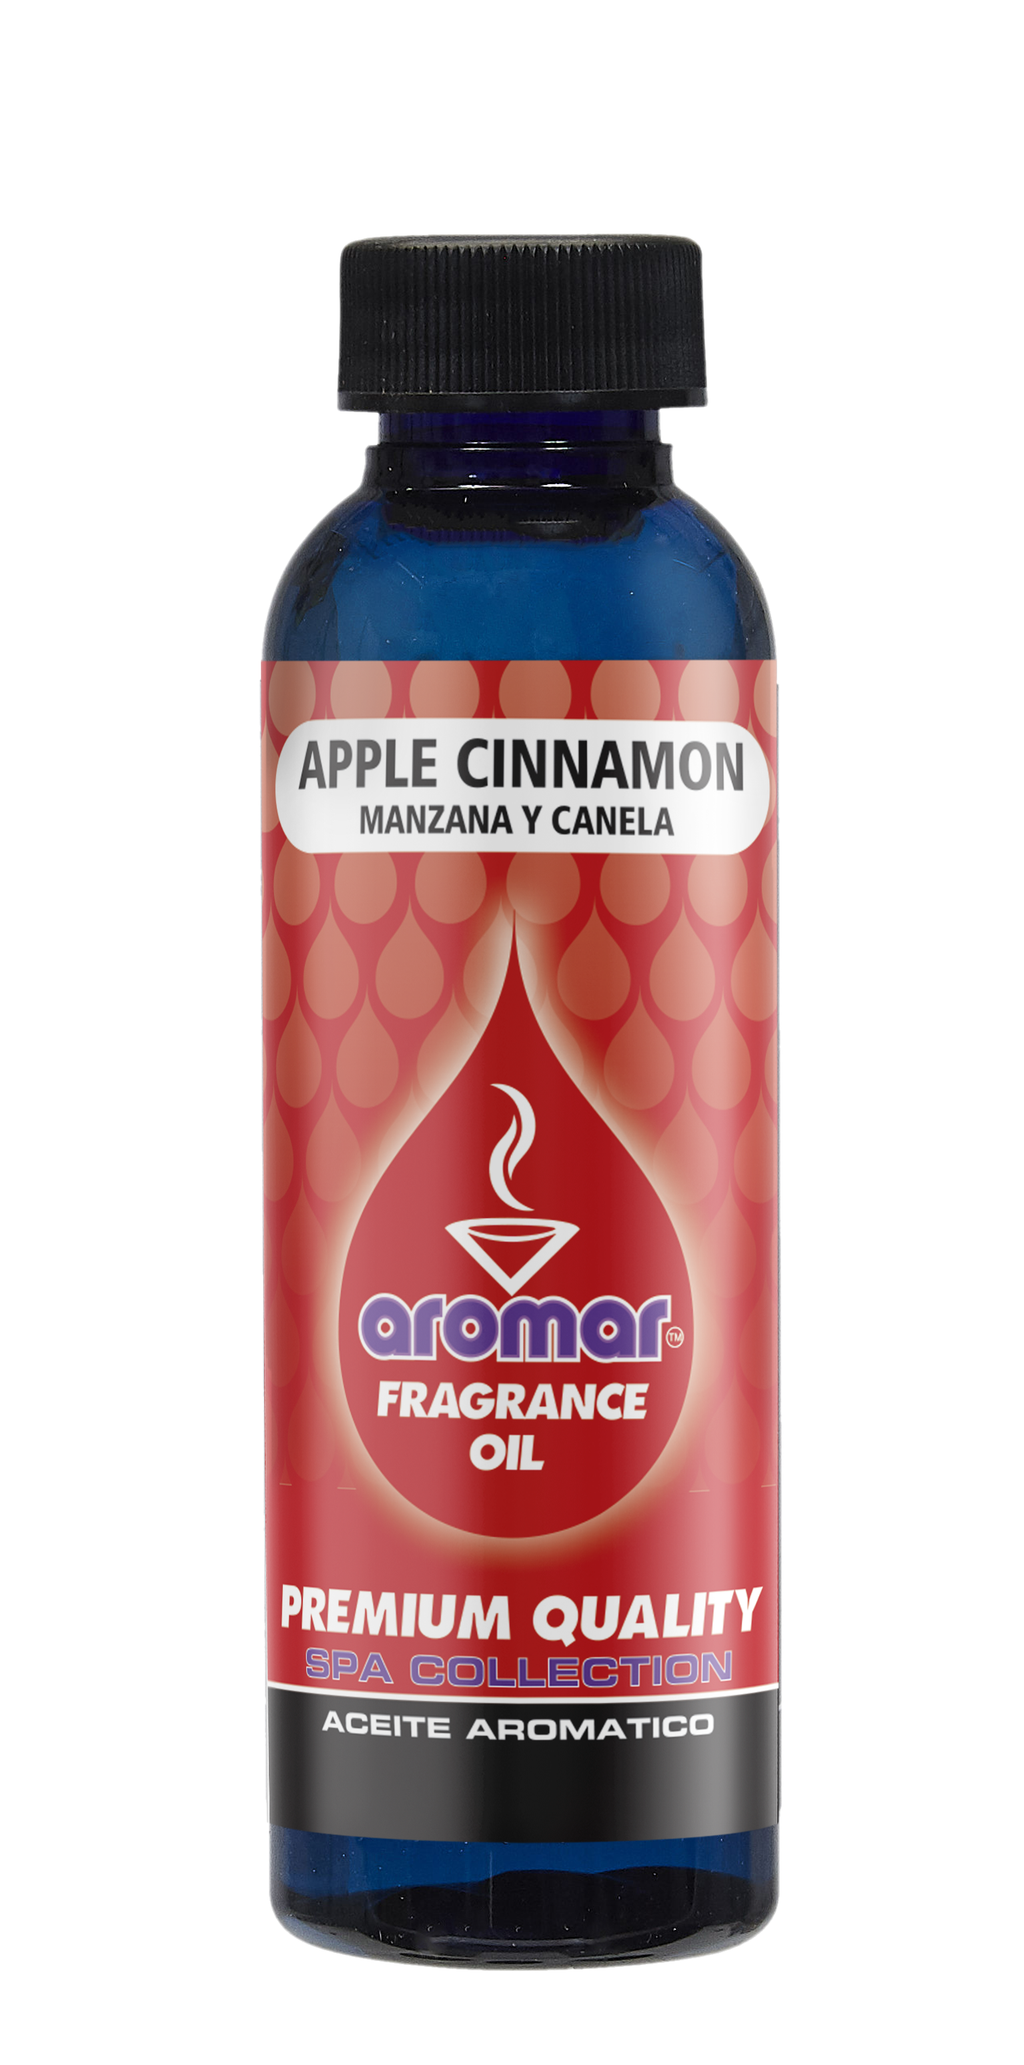 Apple Cinnamon Aromaric Oil